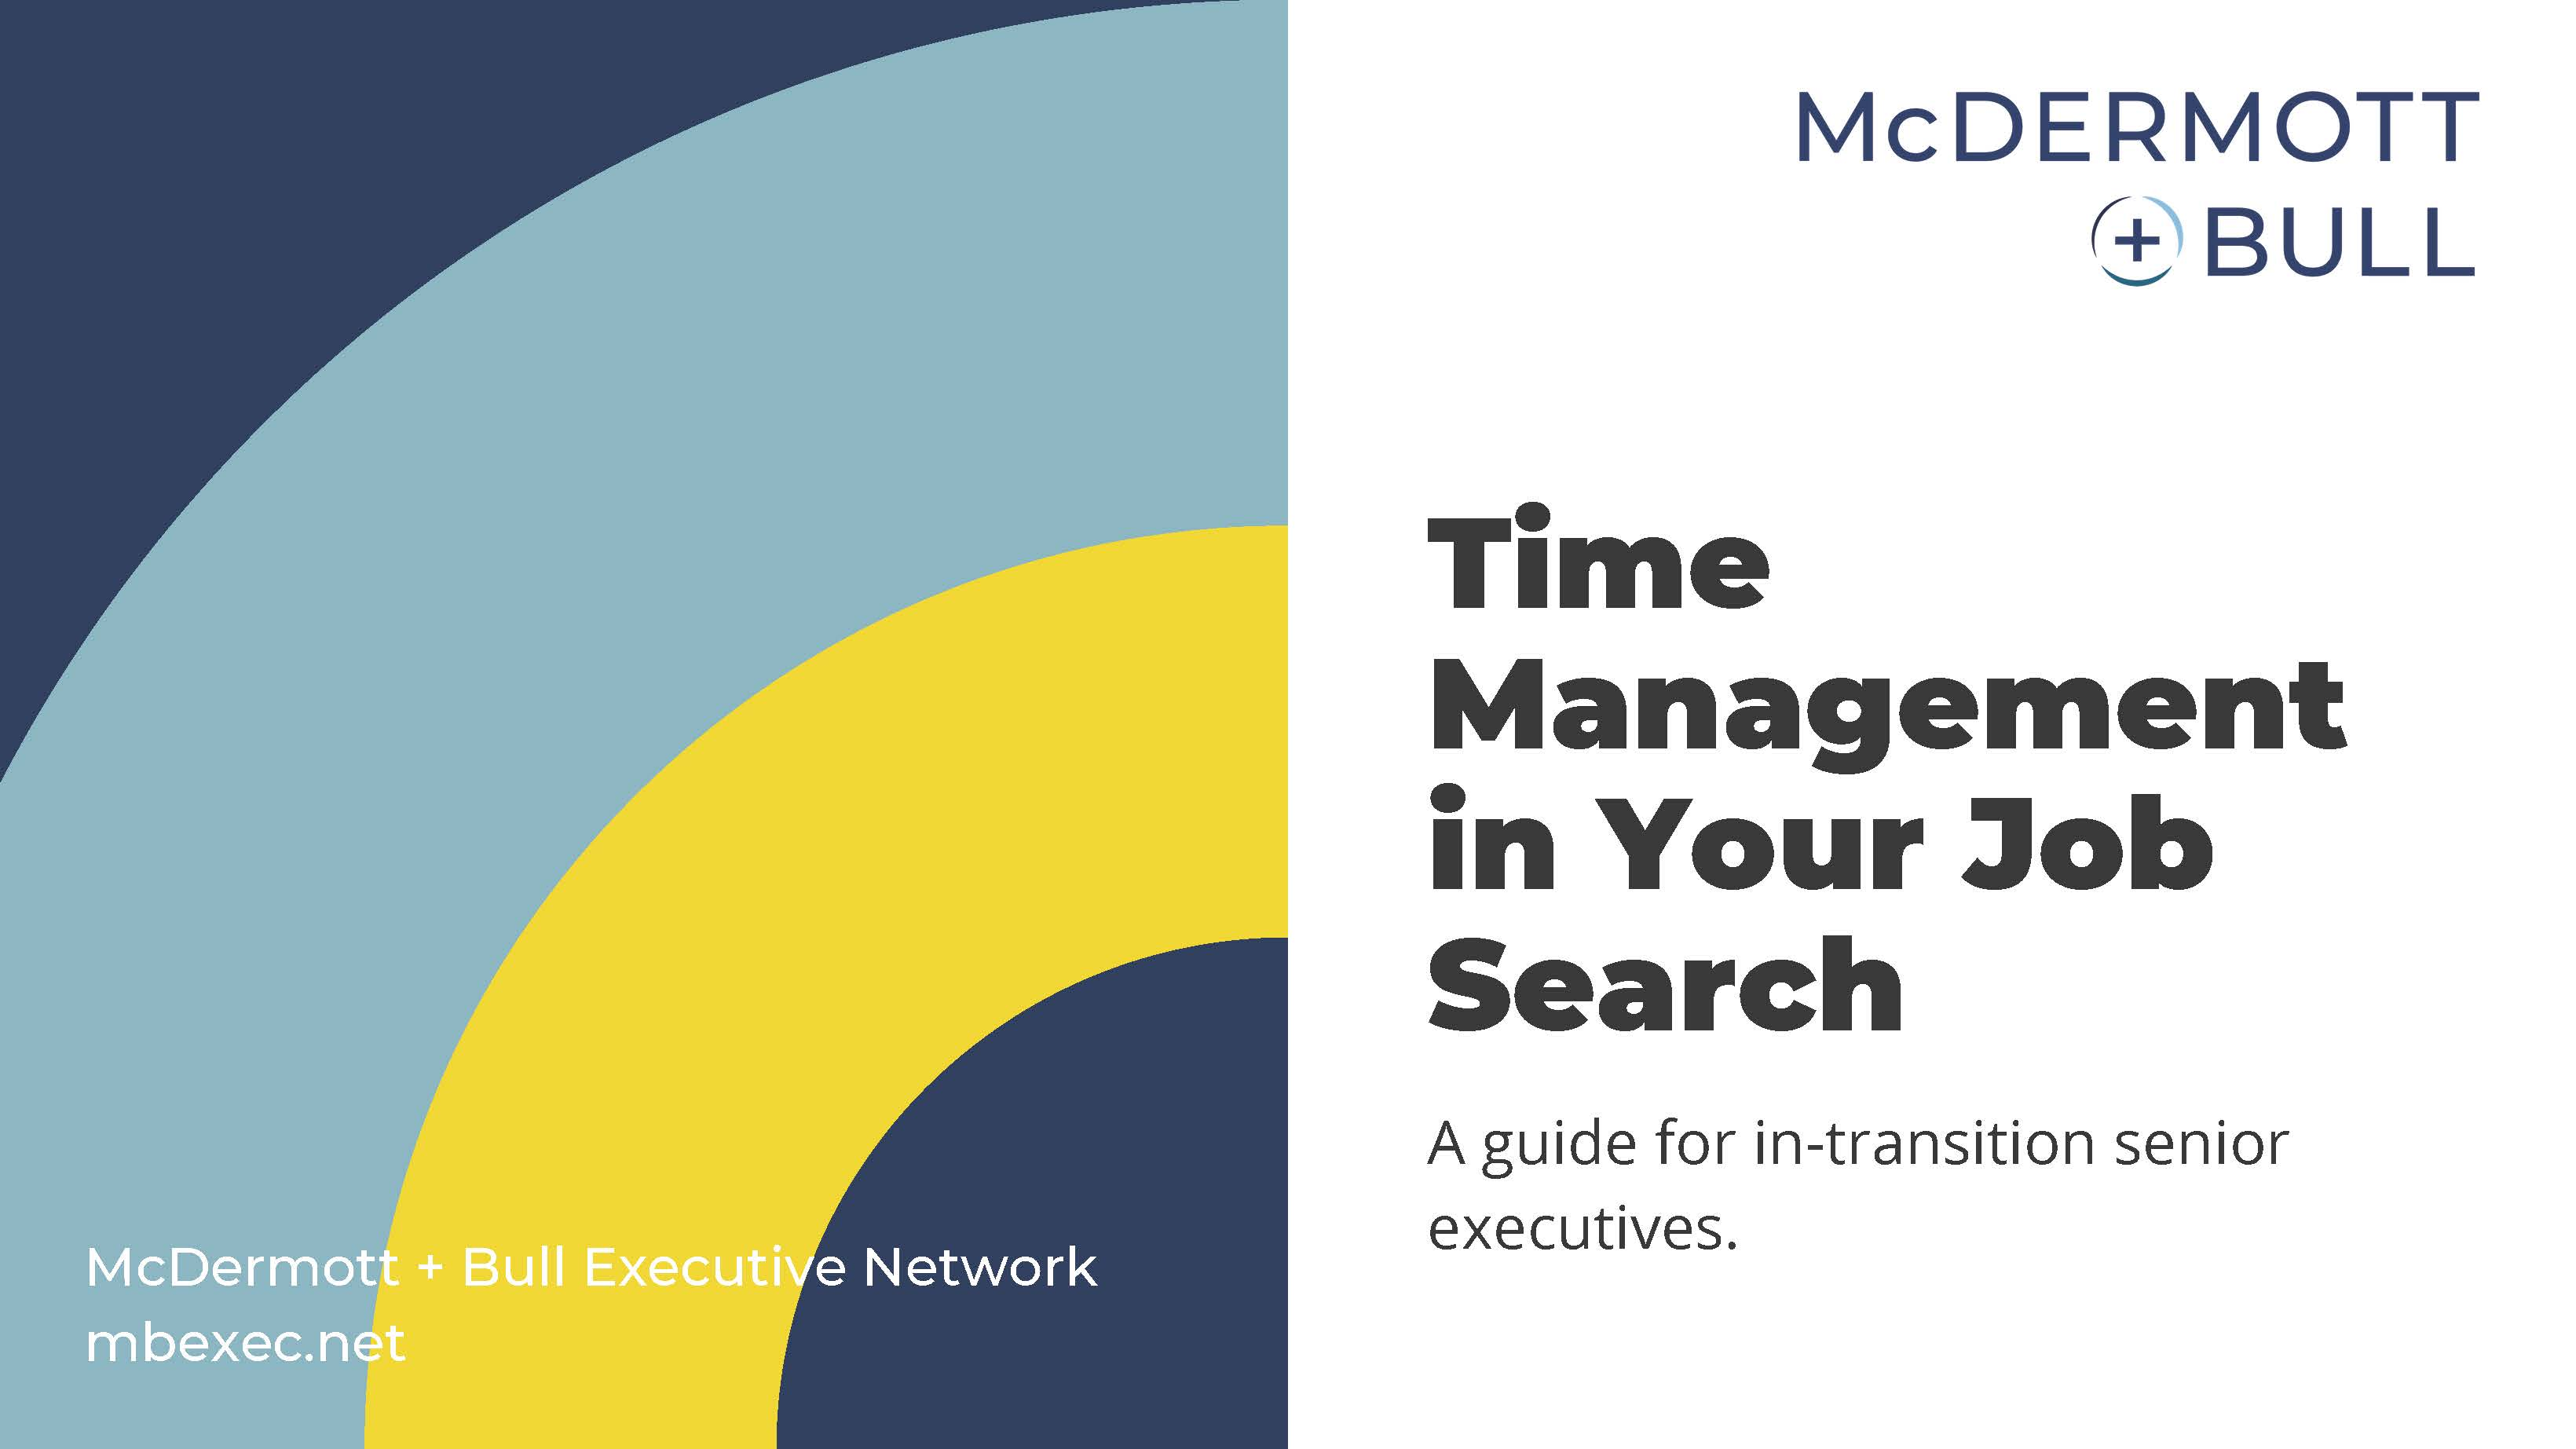 Time Management in Your Job Search